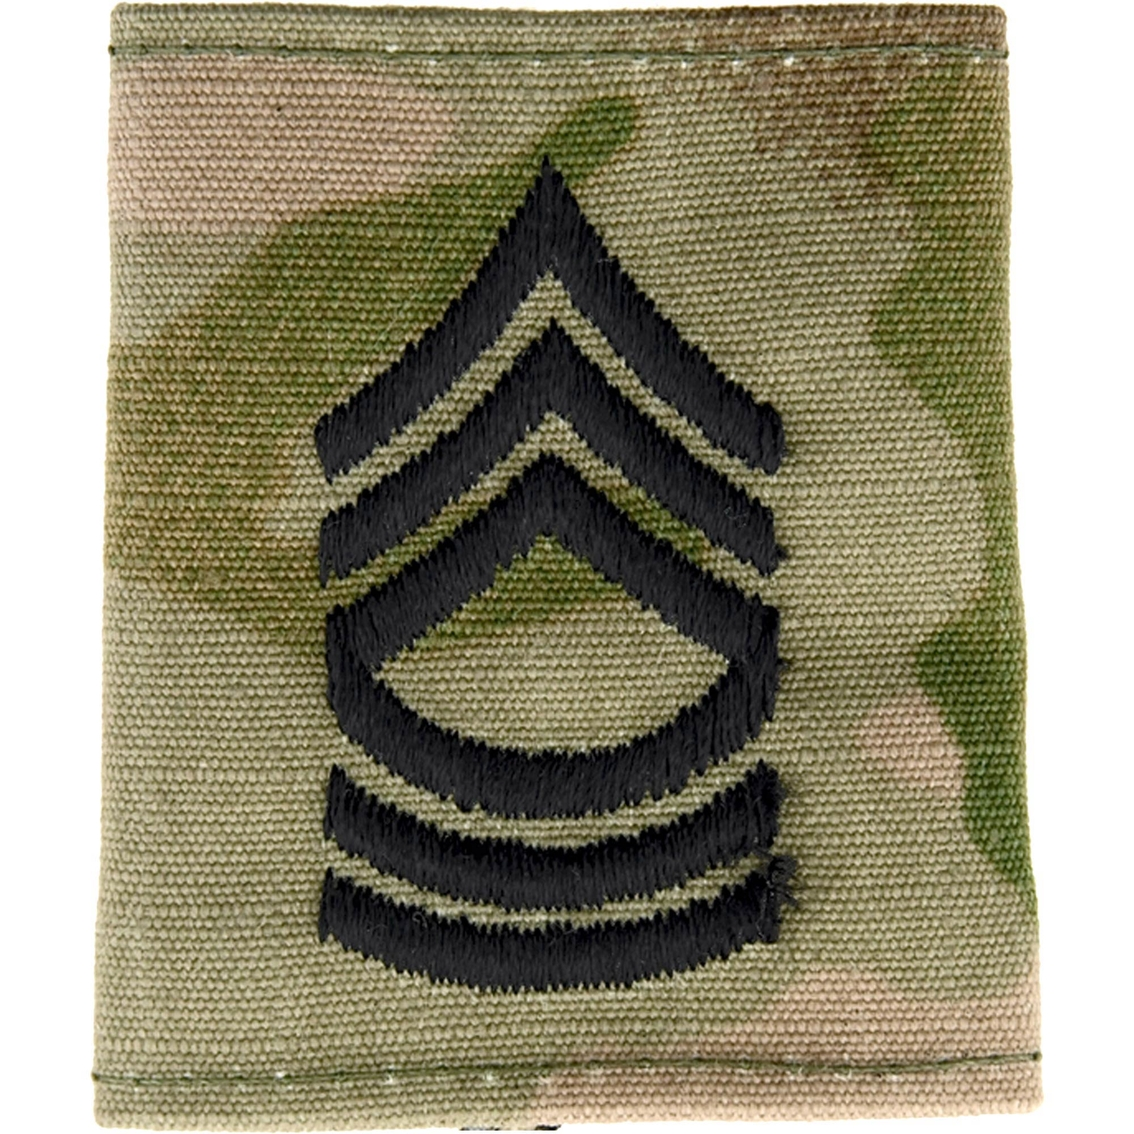 Army Rank Master Sergeant (msg) Gore-tex (ocp), 2 Qty Per Pkg | Ocp ... png black and white download